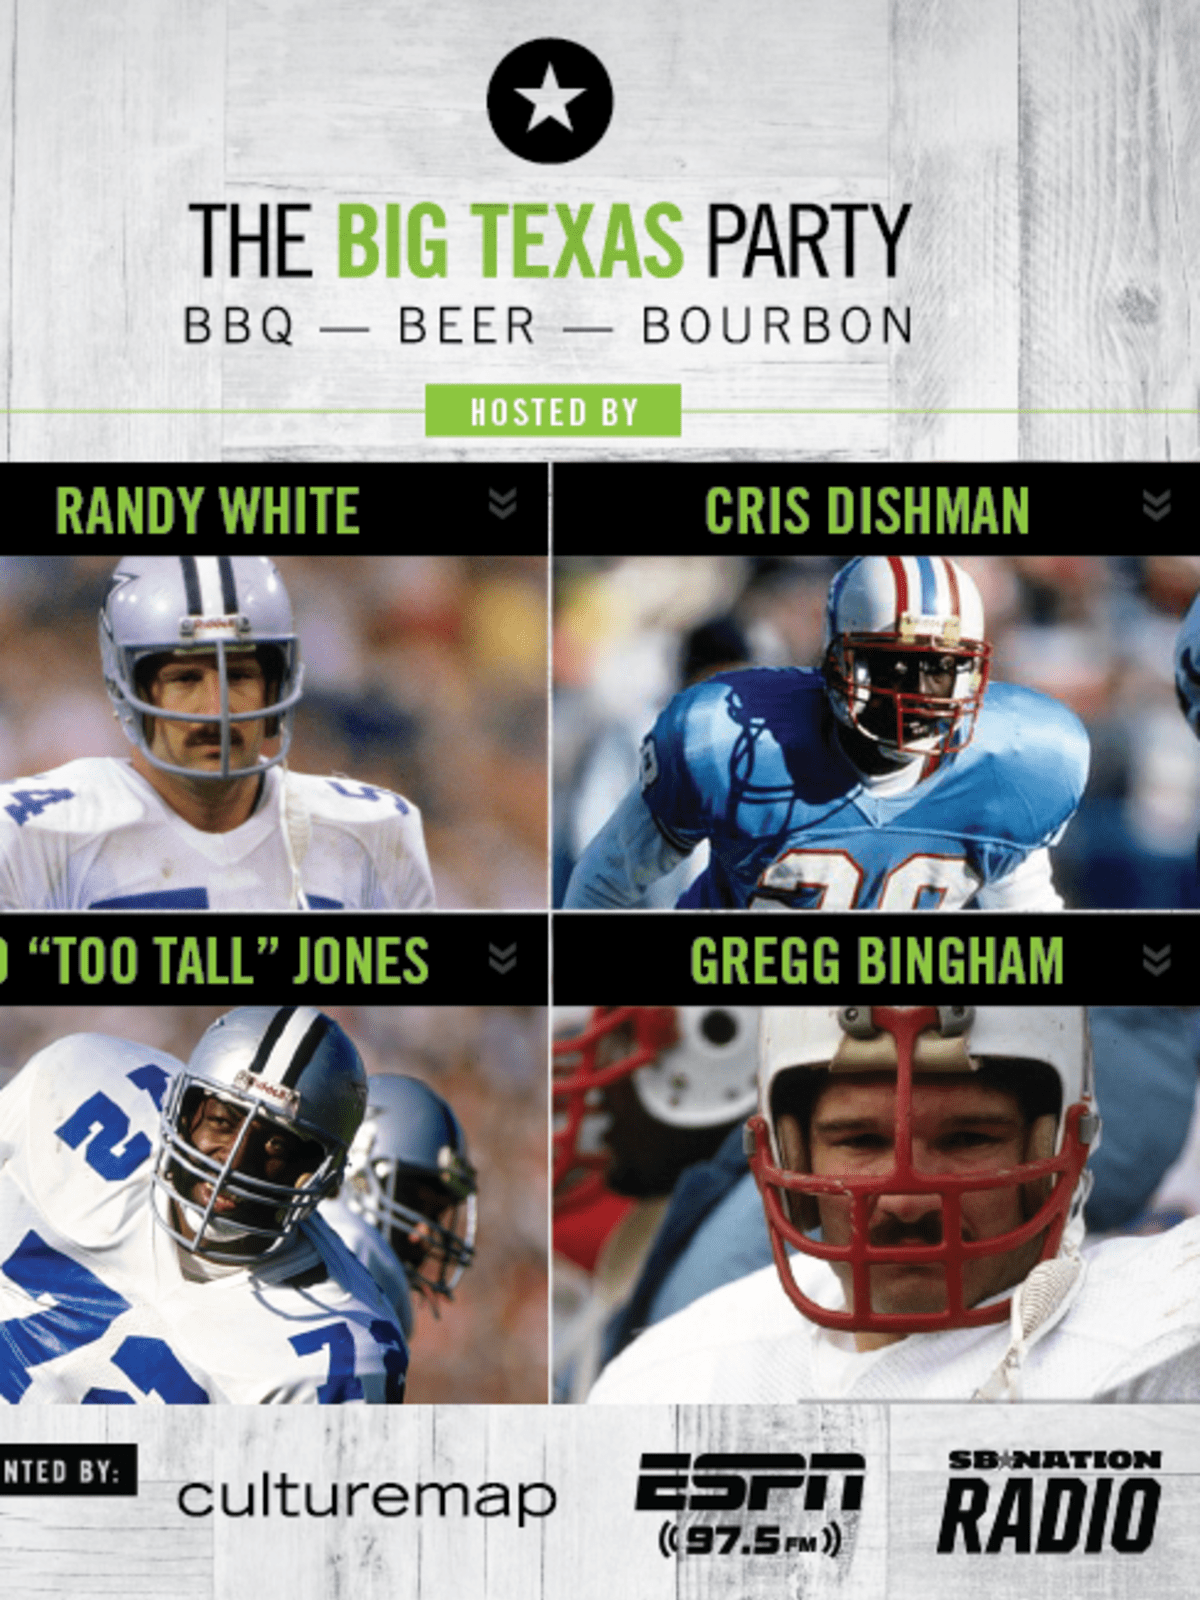 Big Texas Party hosts